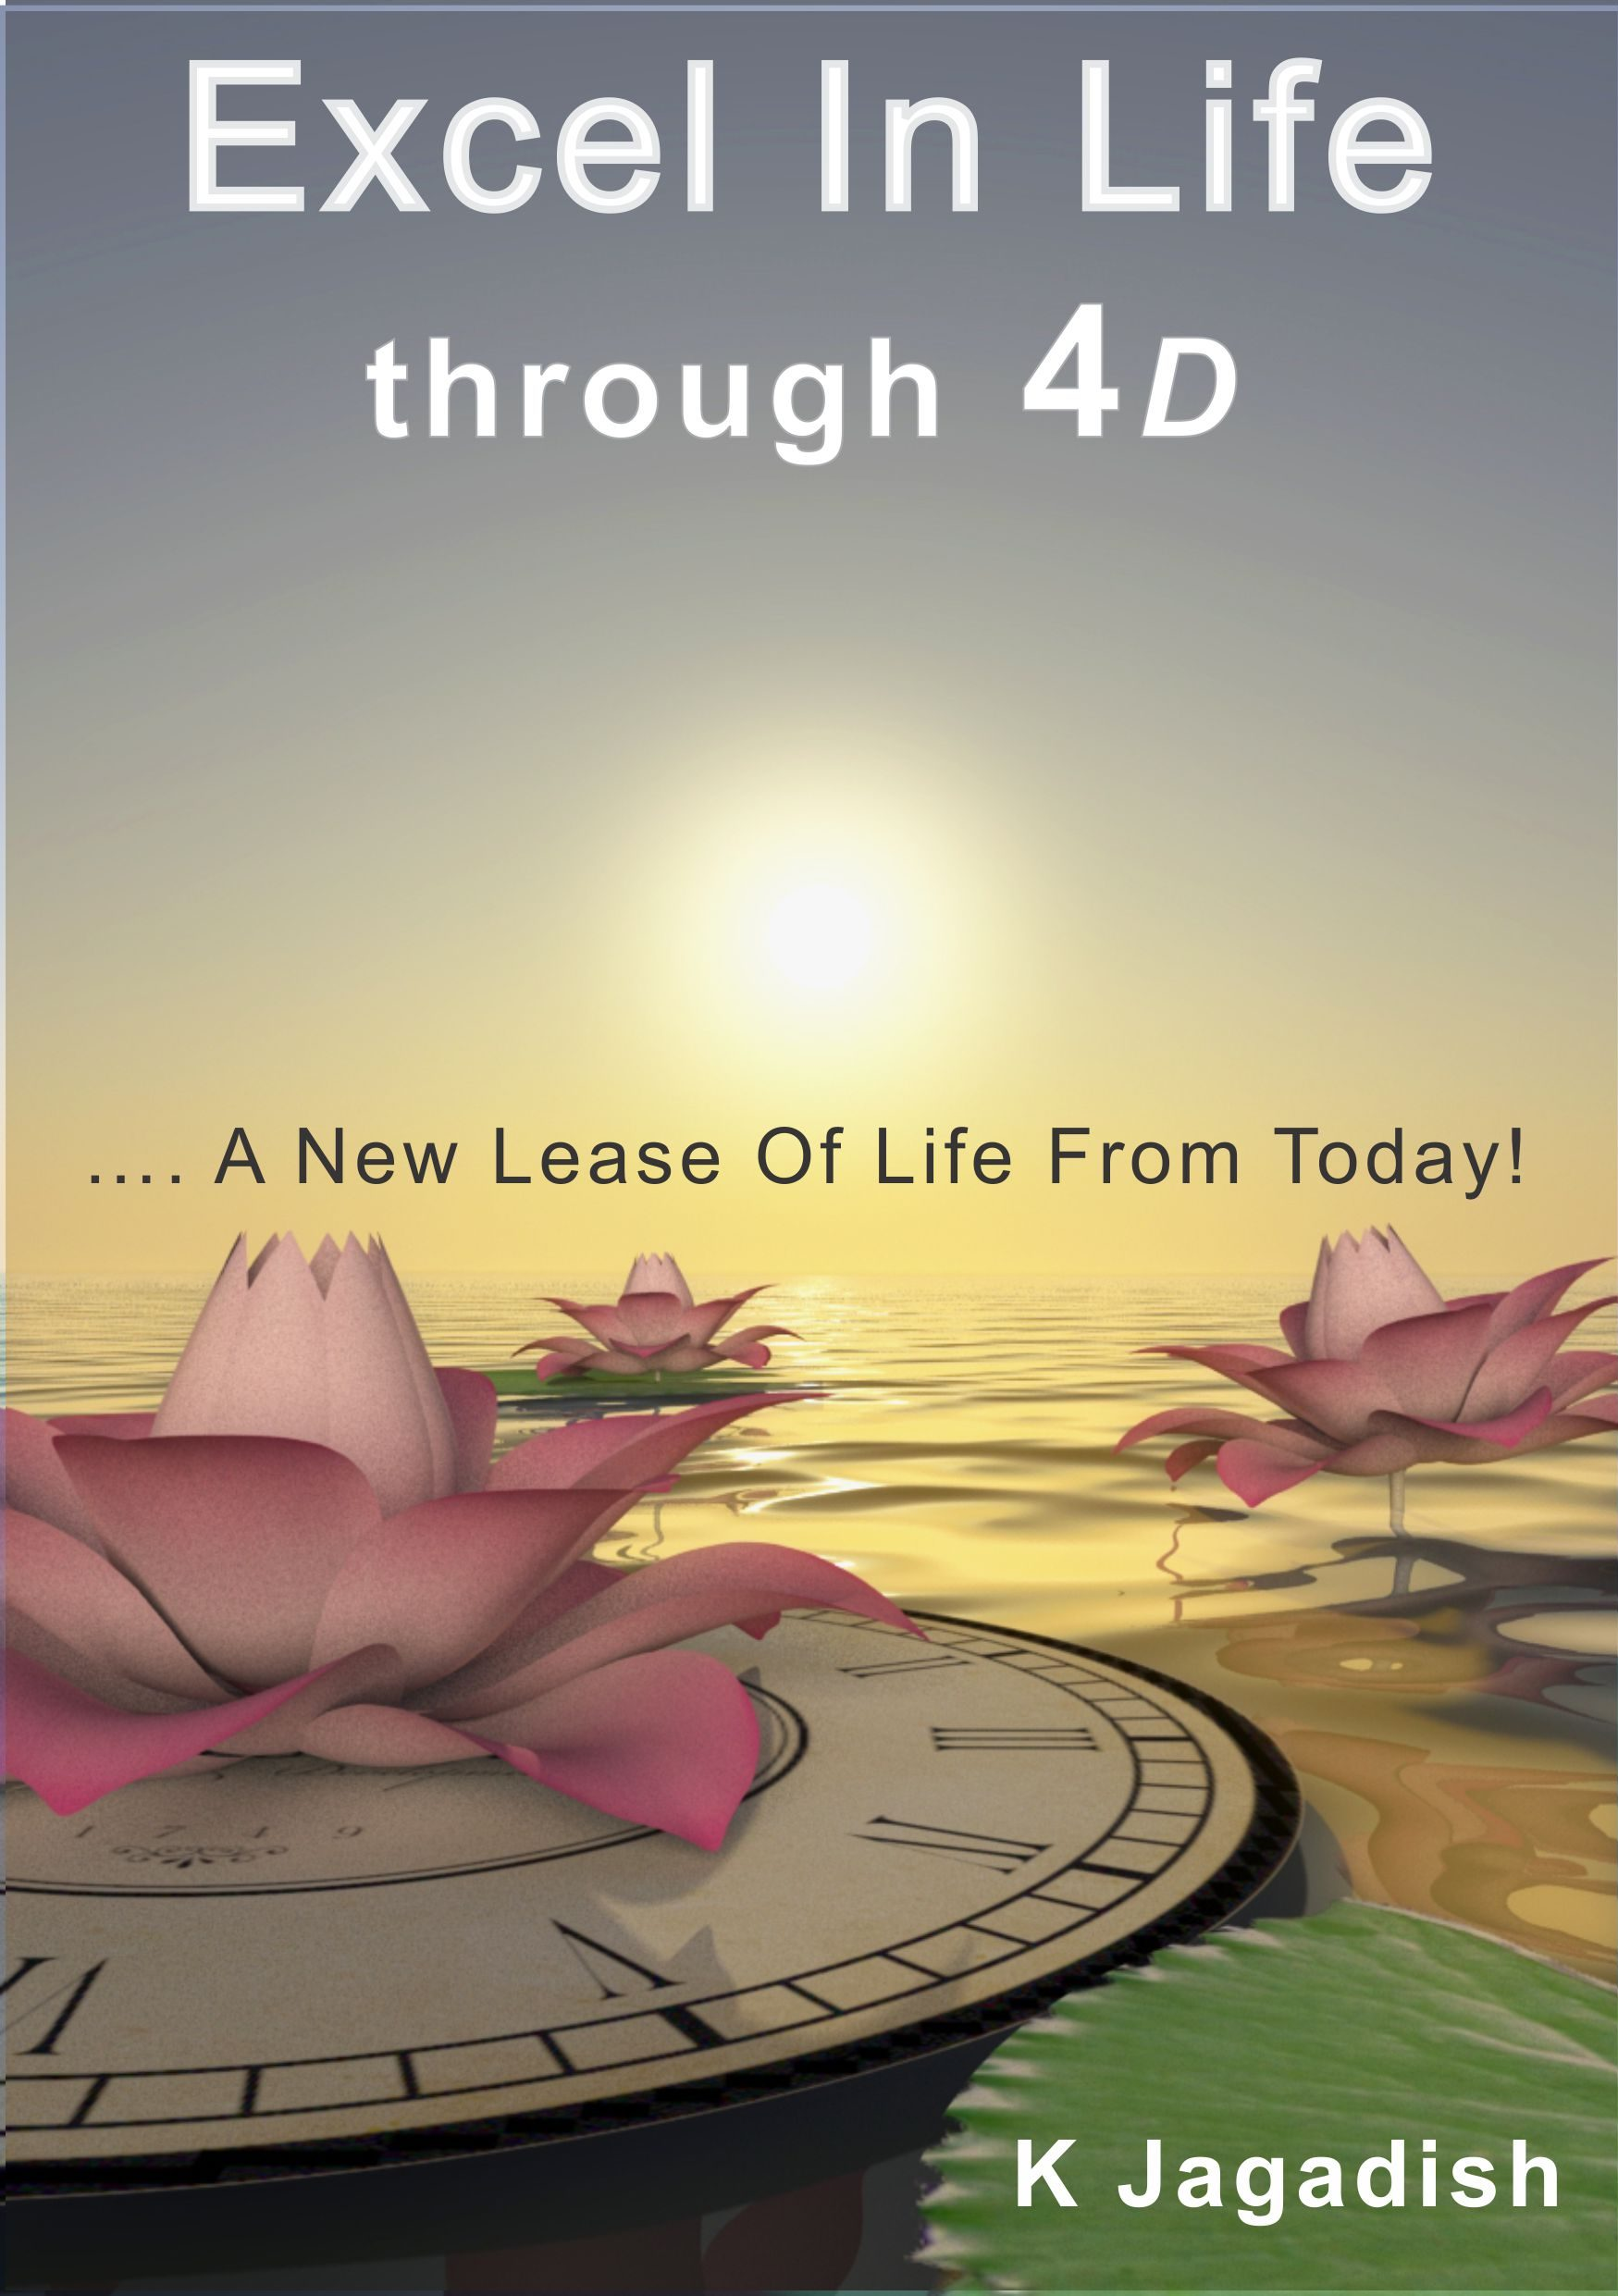 Authored book excel in life through 4d